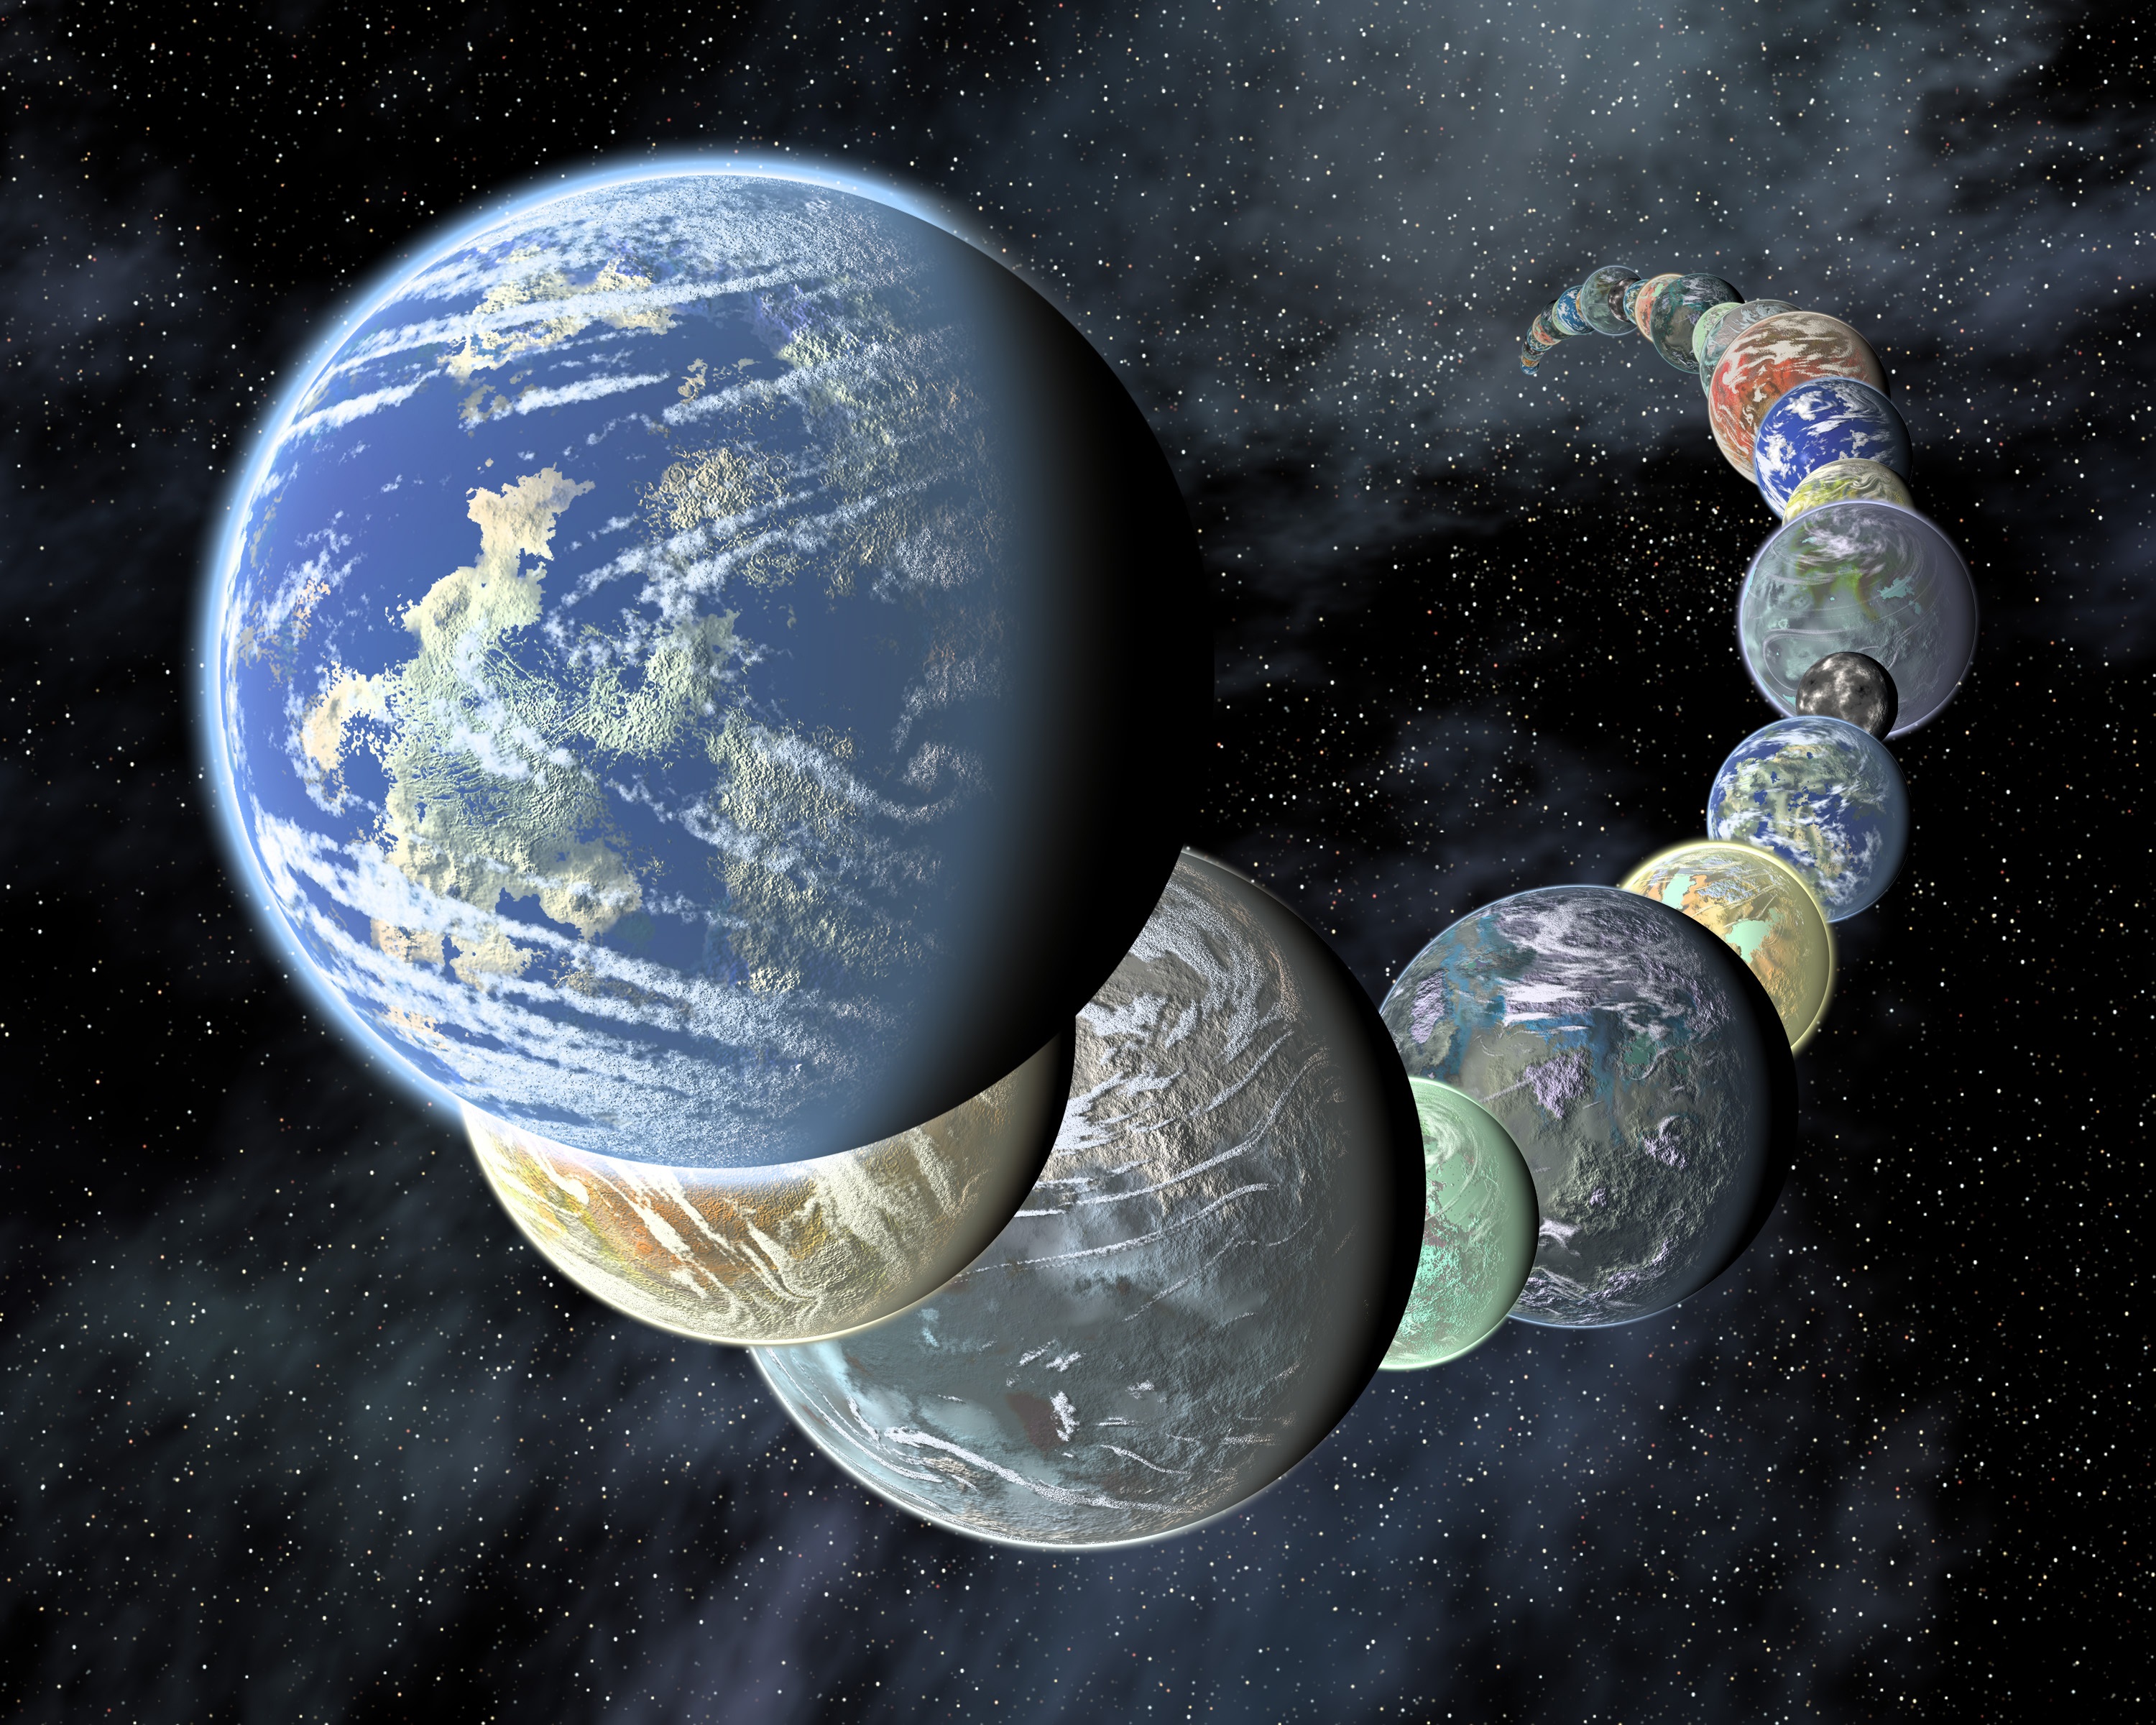 Spacecom NASA Space Exploration and Astronomy News